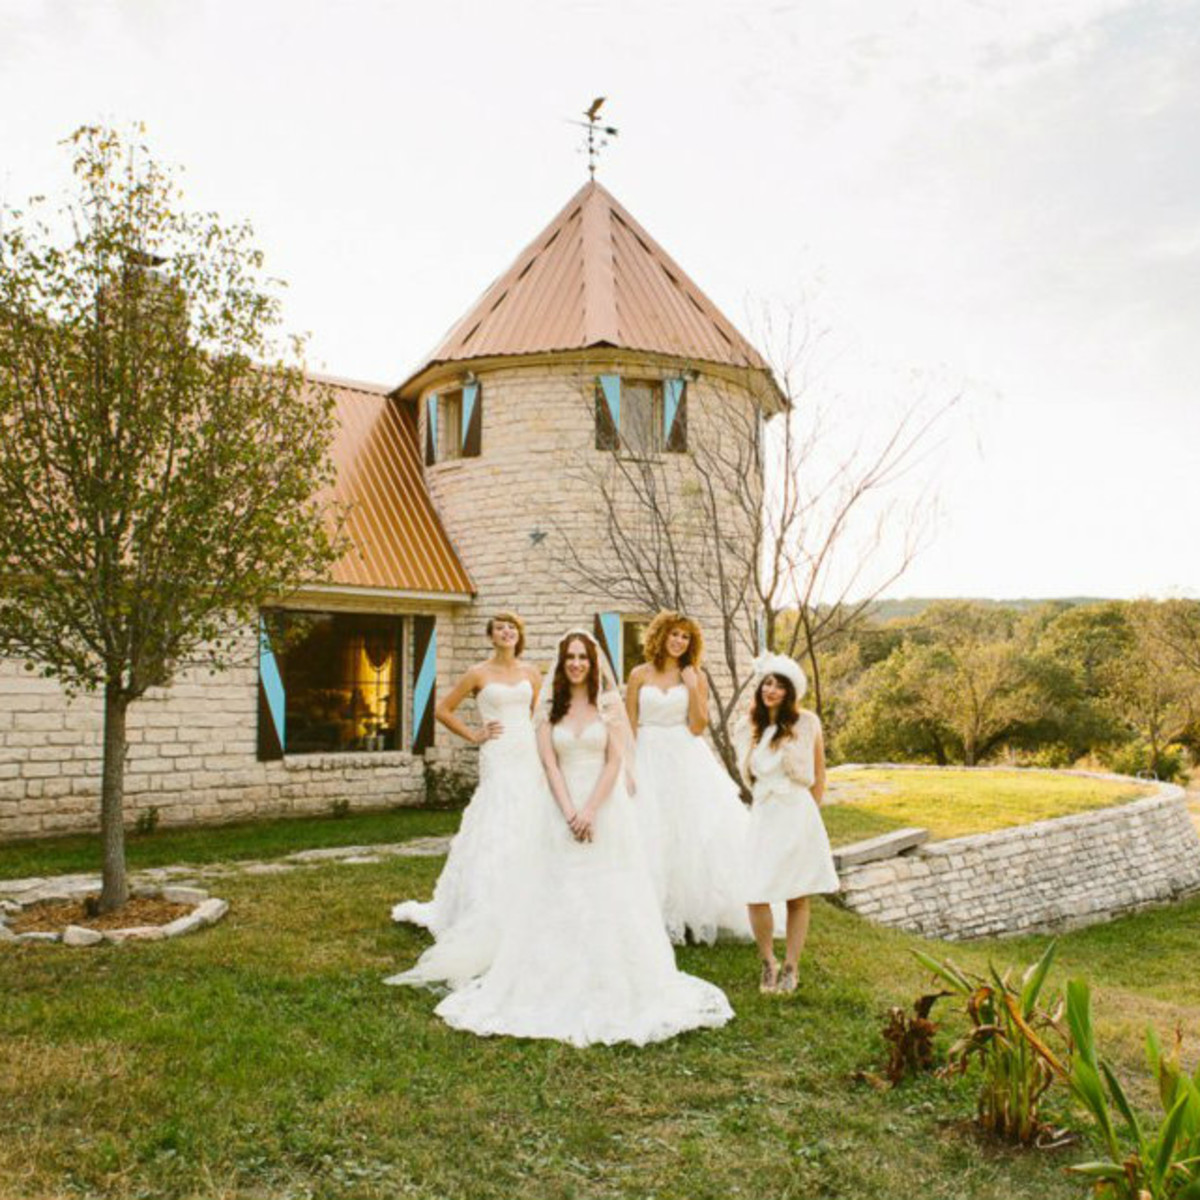 Smythwick Castle & Lodge Hill Country wedding venue